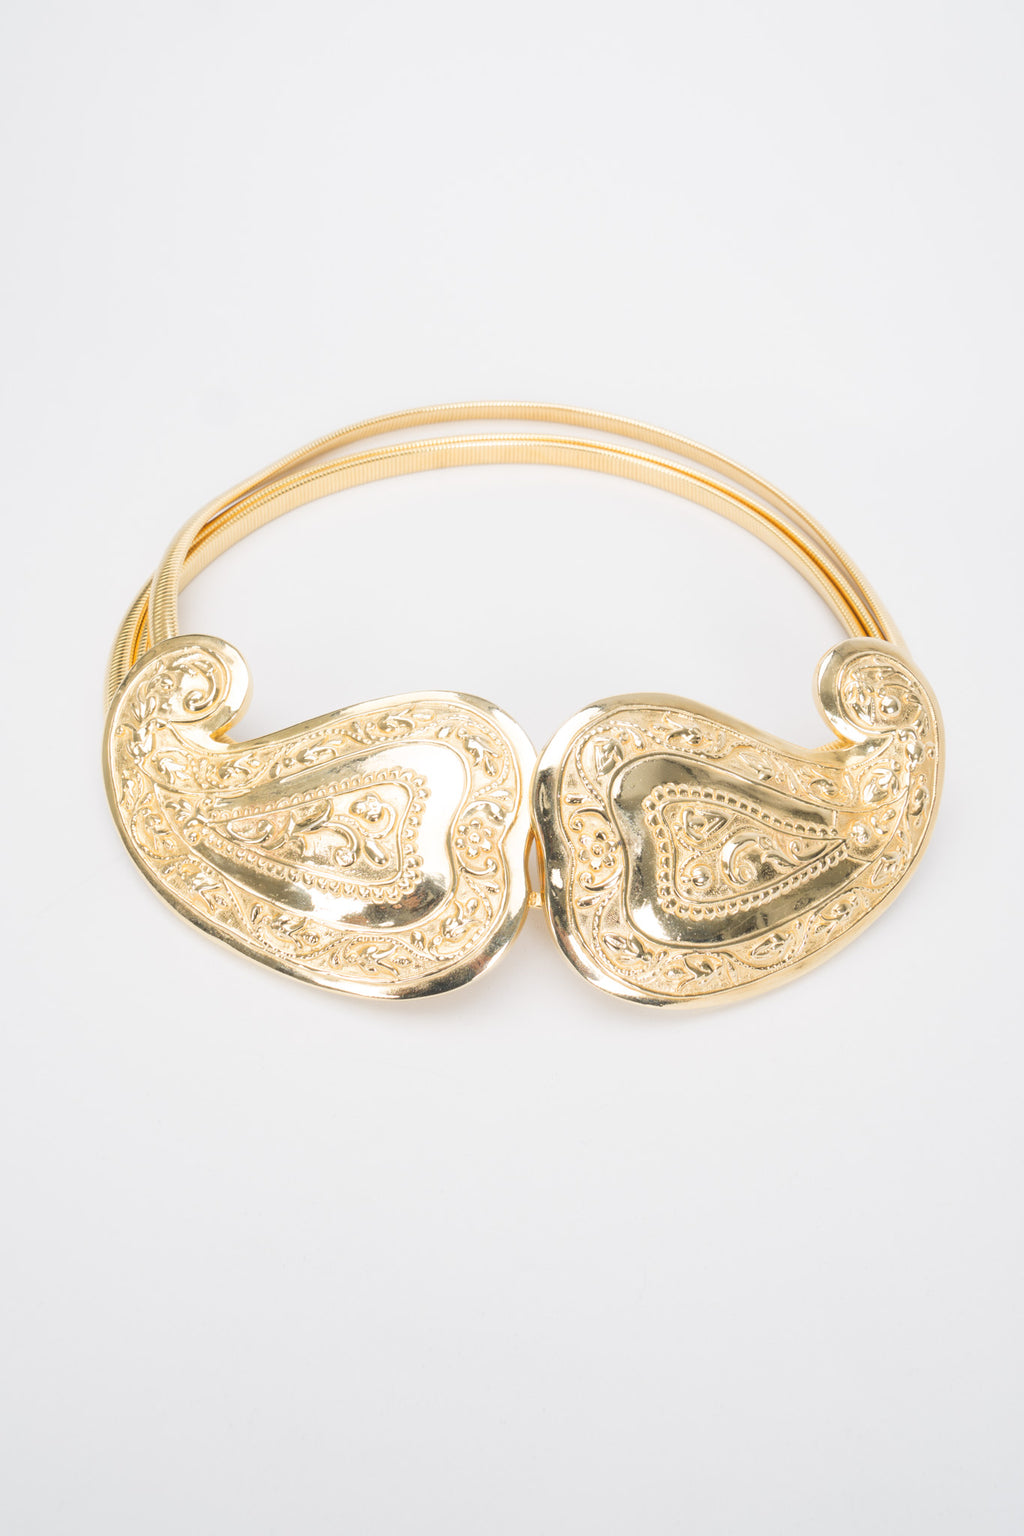 Accessocraft Gold Paisley Buckle Belt